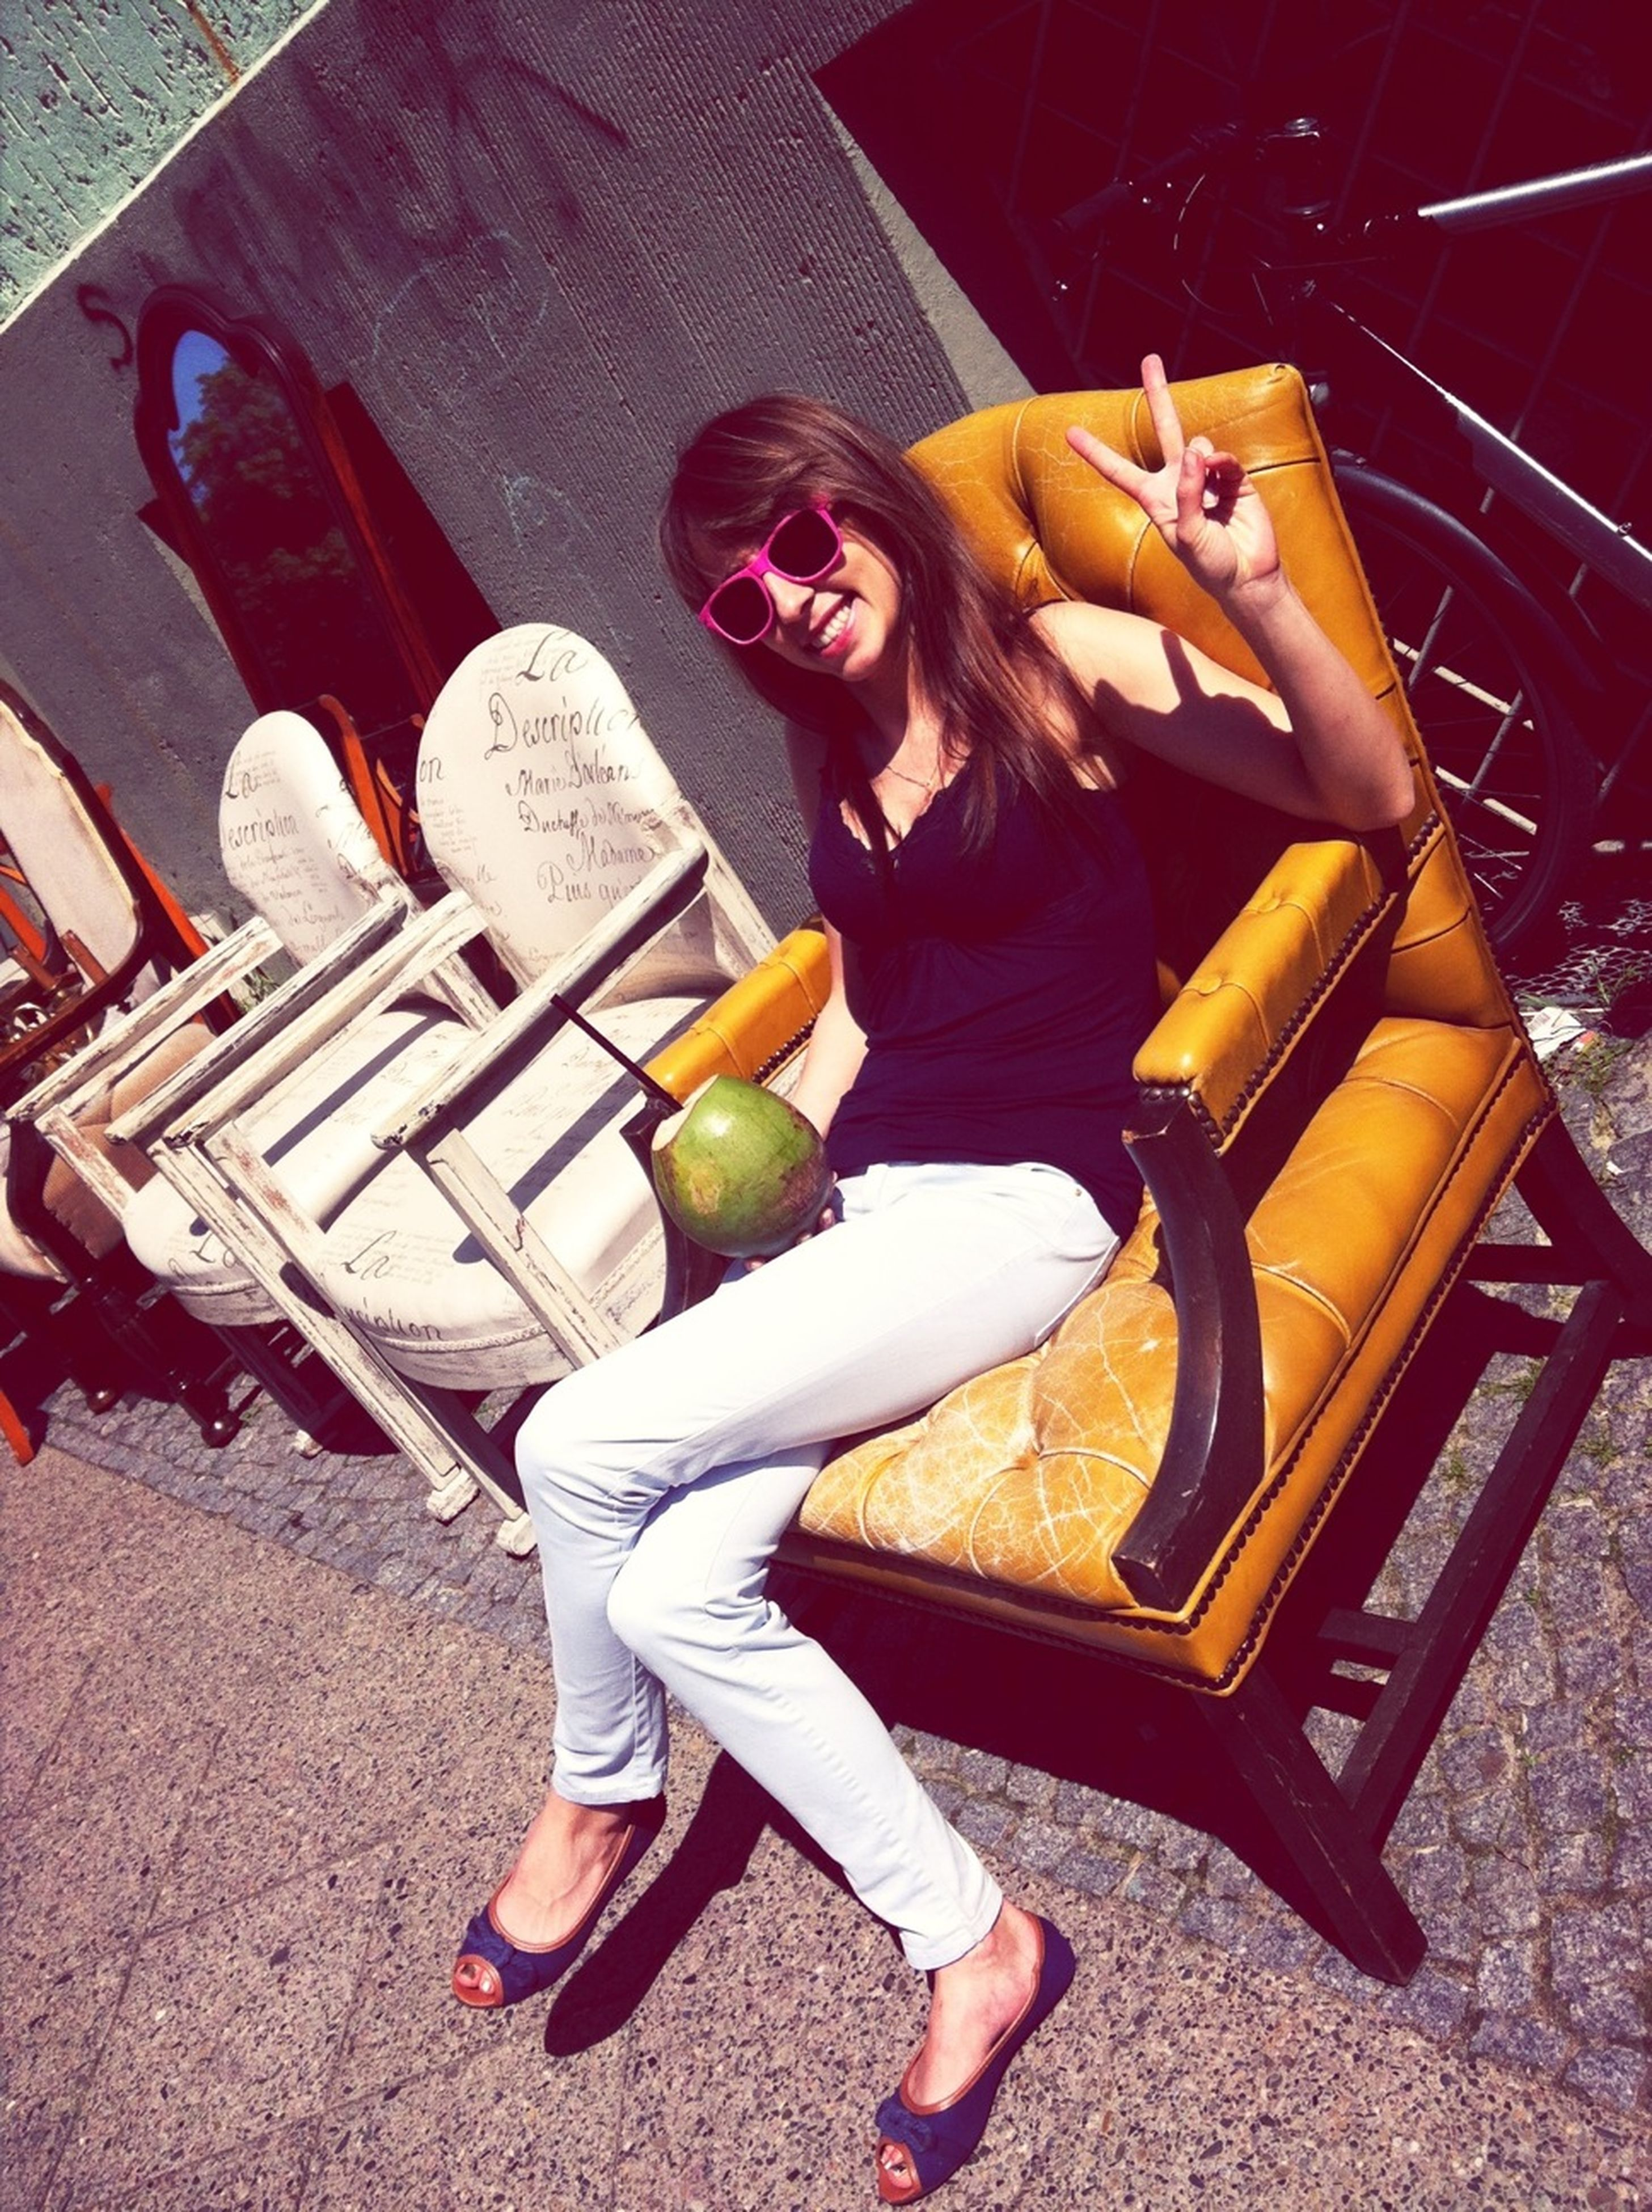 full length, lifestyles, leisure activity, casual clothing, person, childhood, young adult, young women, elementary age, sitting, enjoyment, fun, girls, high angle view, three quarter length, playing, holding, sunlight